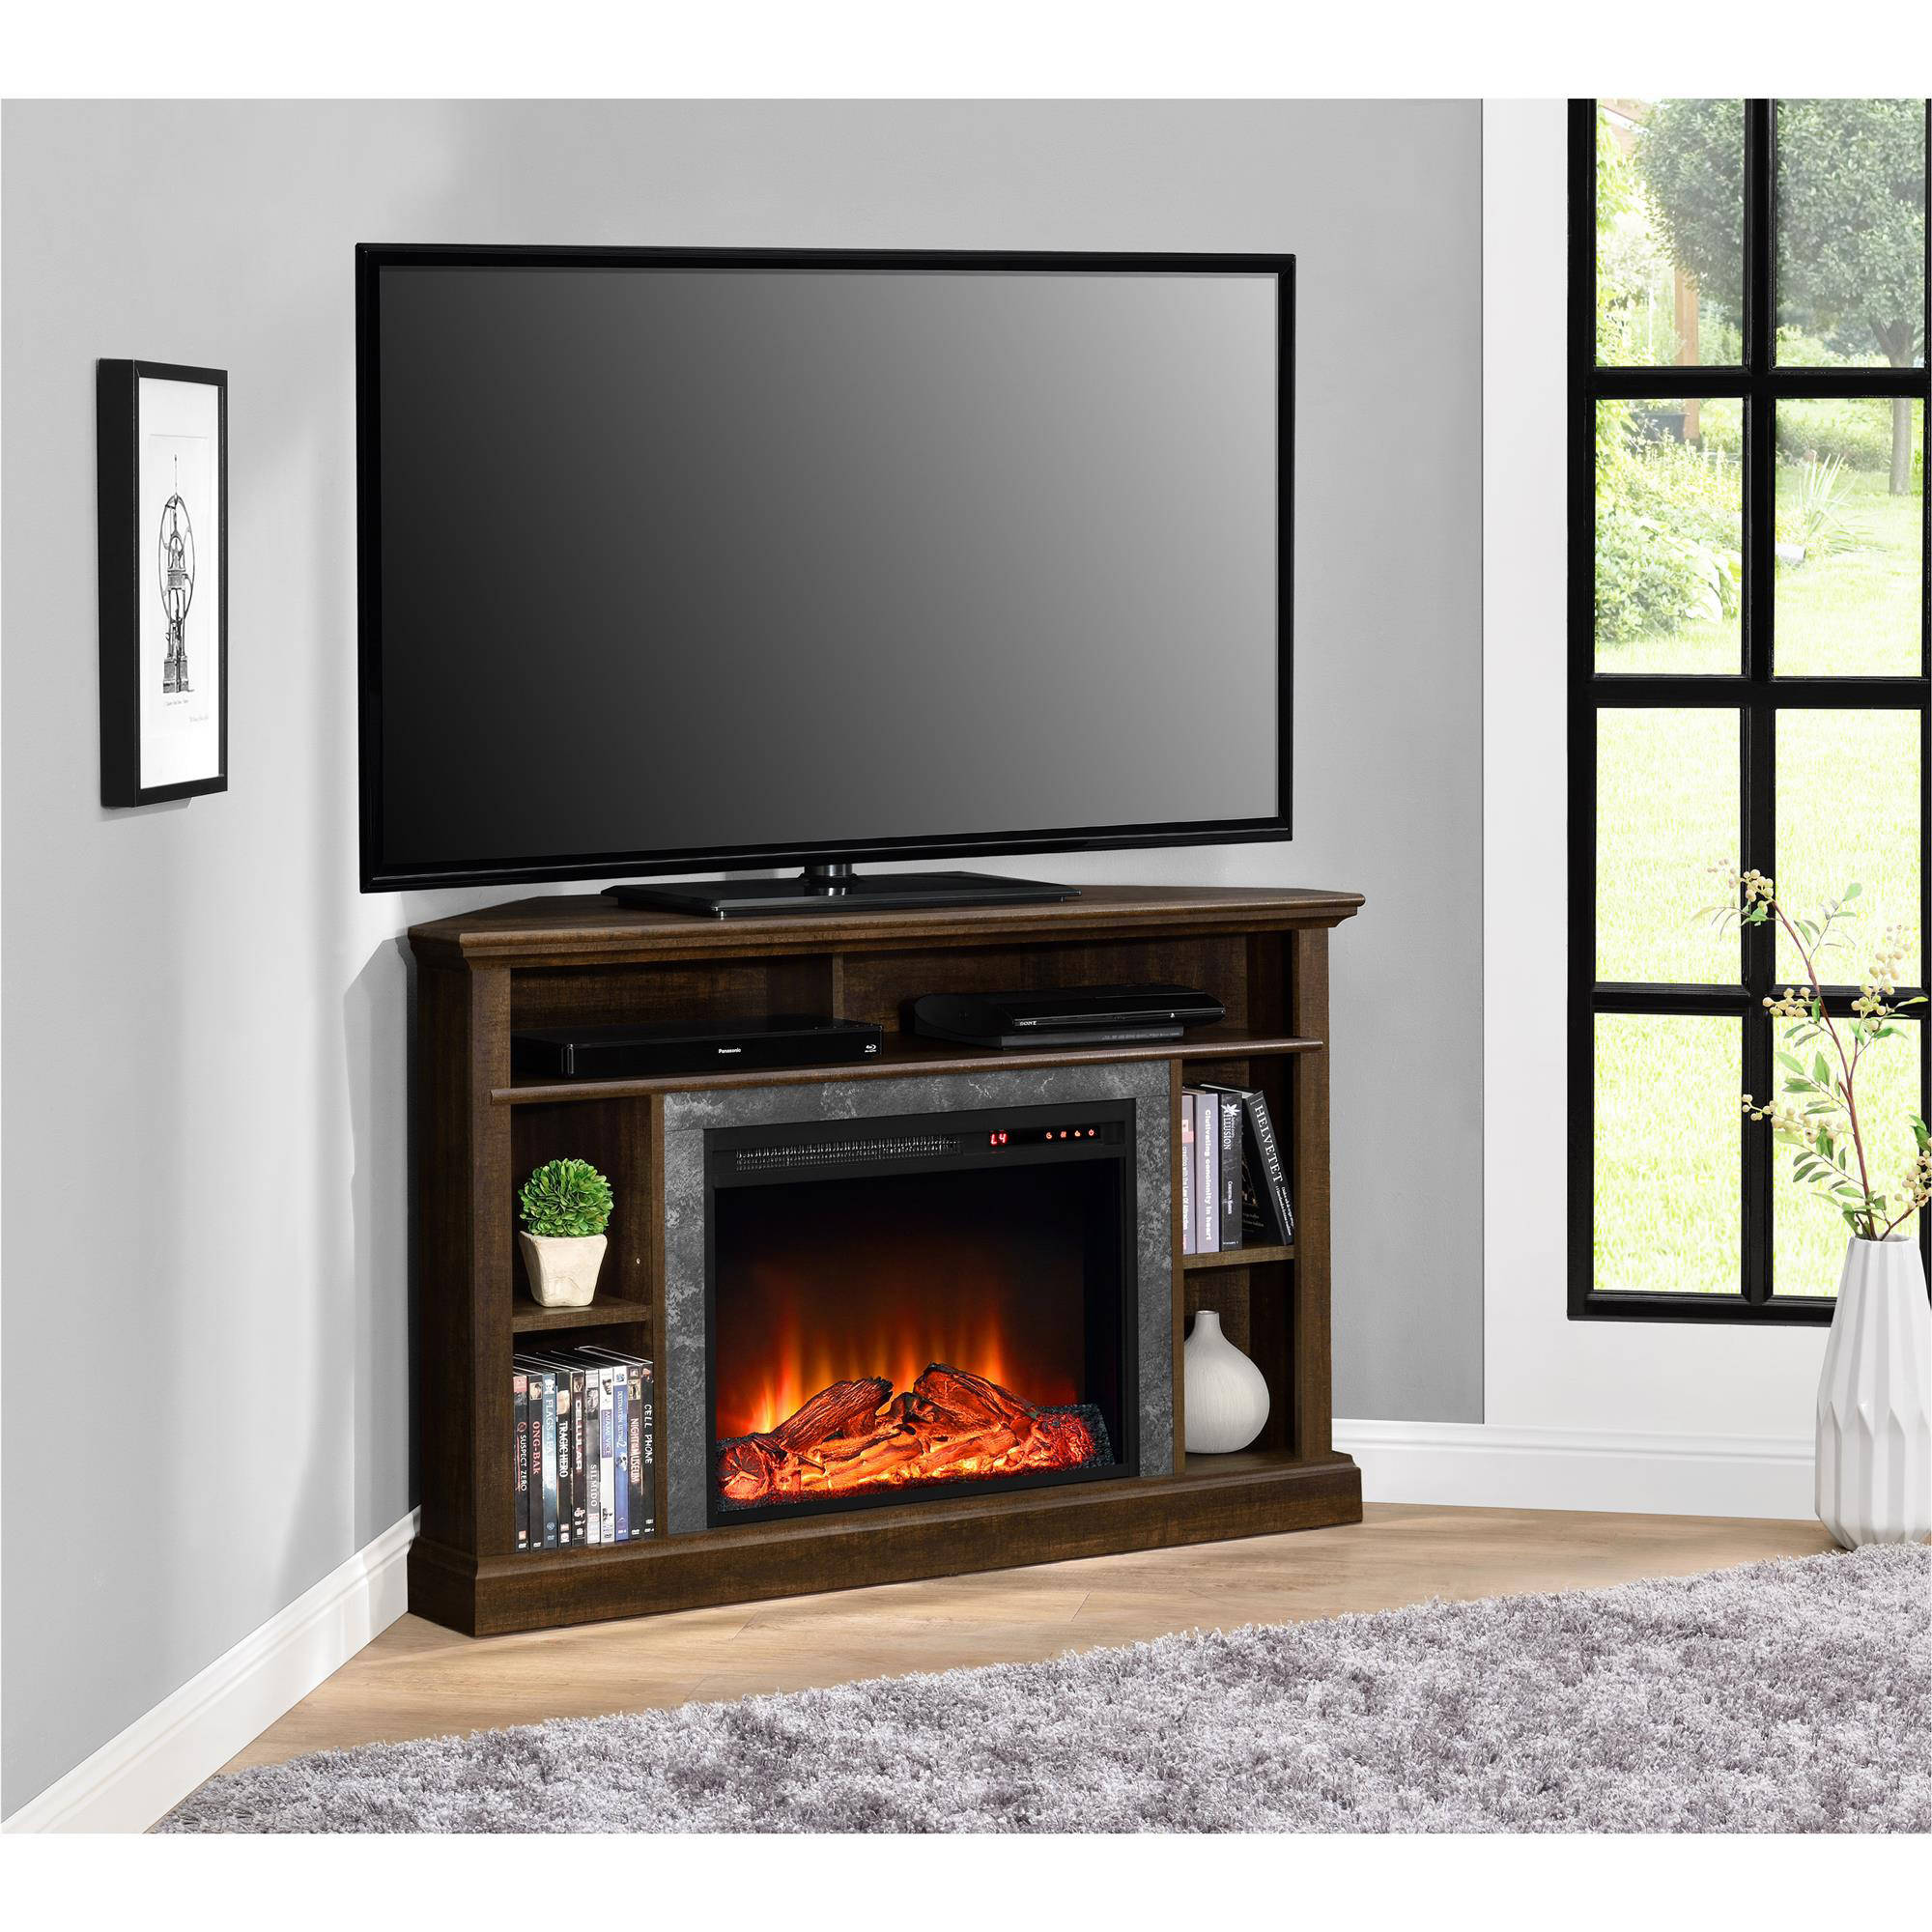 Walmart Black Electric Fireplace Mainstays Loring Media Fireplace For Tvs Up To 50